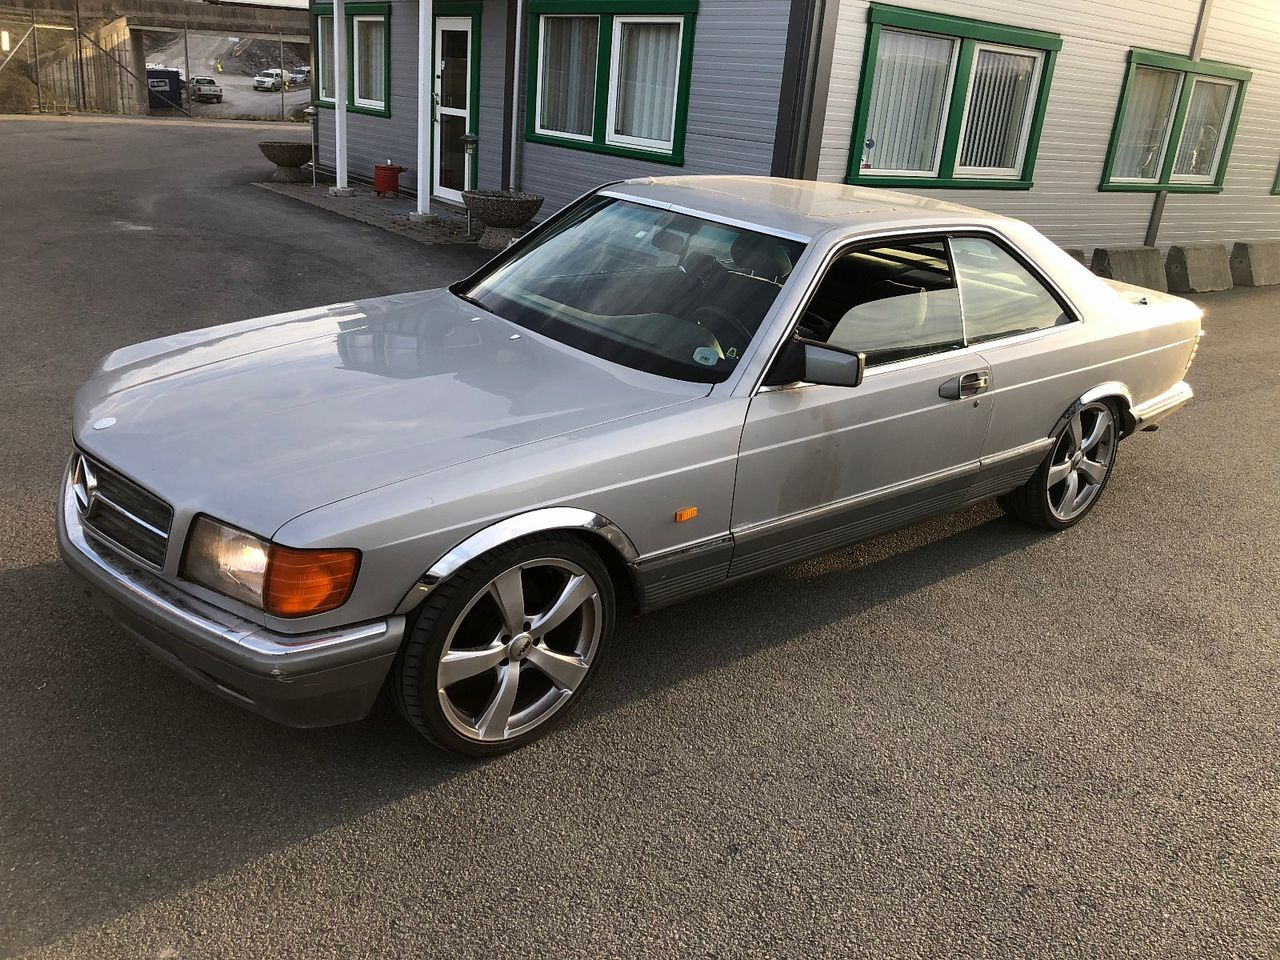 Mercedes Benz S Klasse 500sec Ny I Norge Inbytte Vurderes 3 Eiere 1983 323 000 Km Kr 51 593 Coches De Lujo Lujos Coches